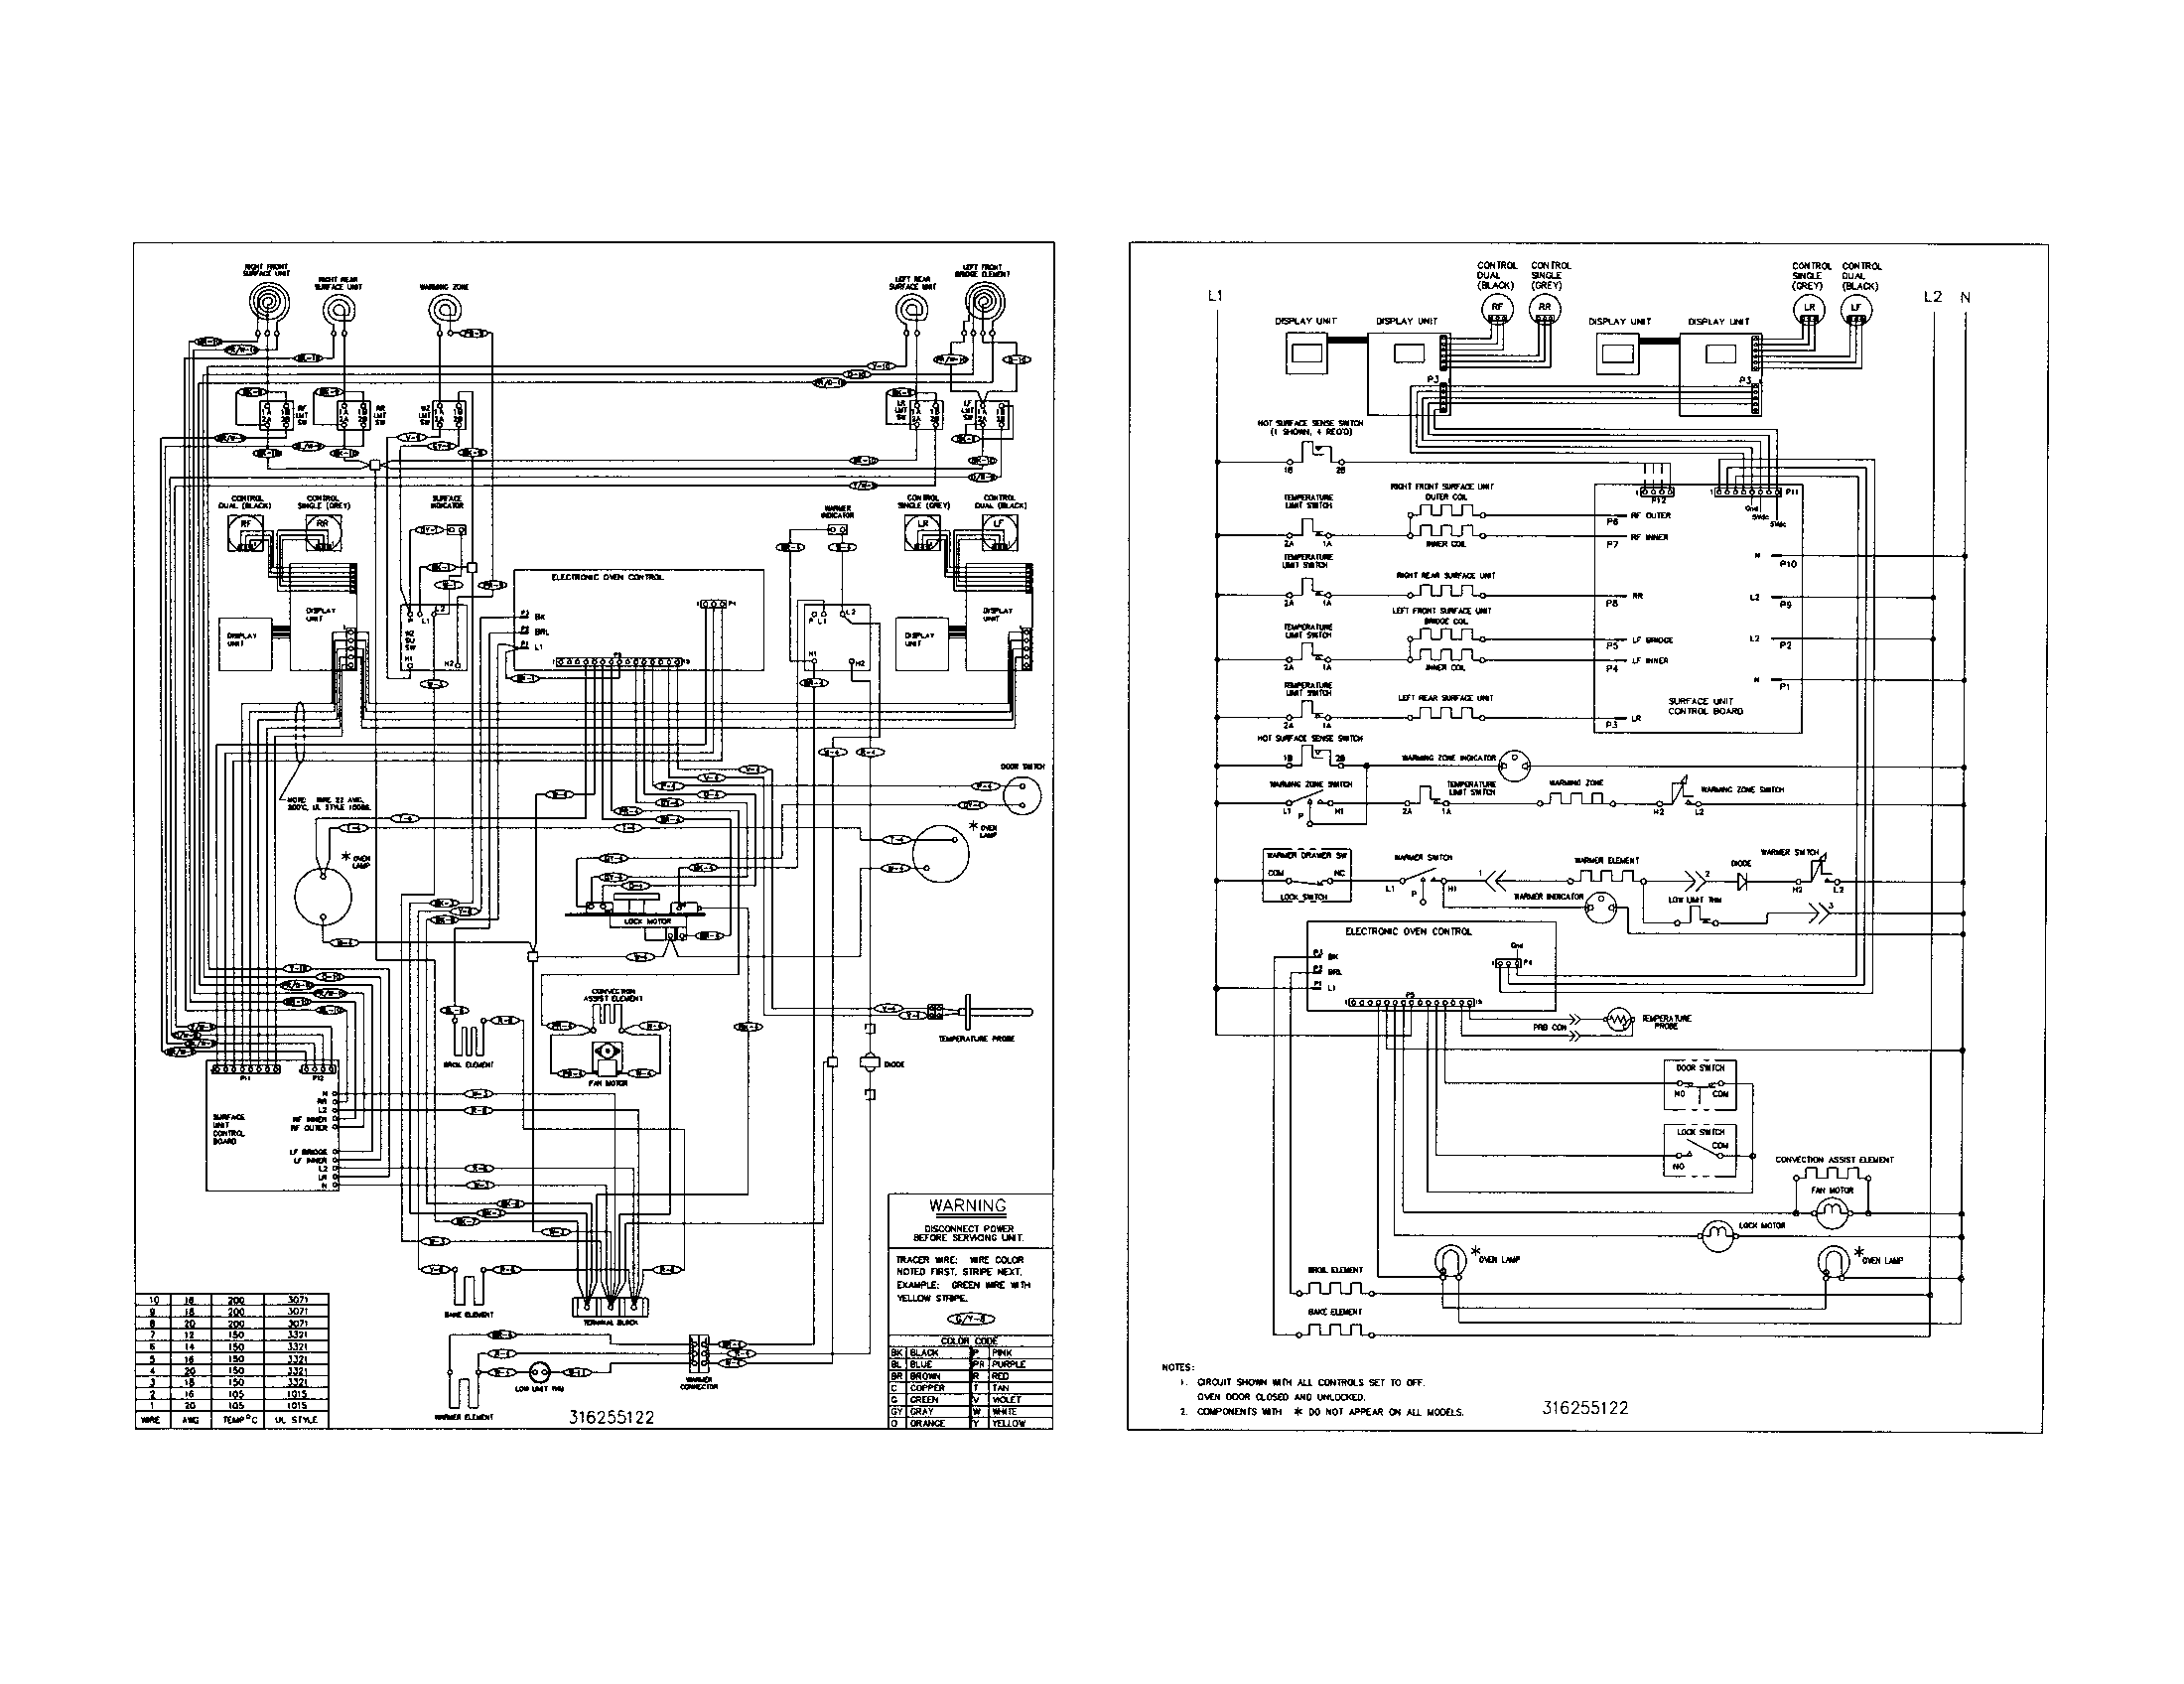 kenmore electric stove wiring diagrams 911 95582990